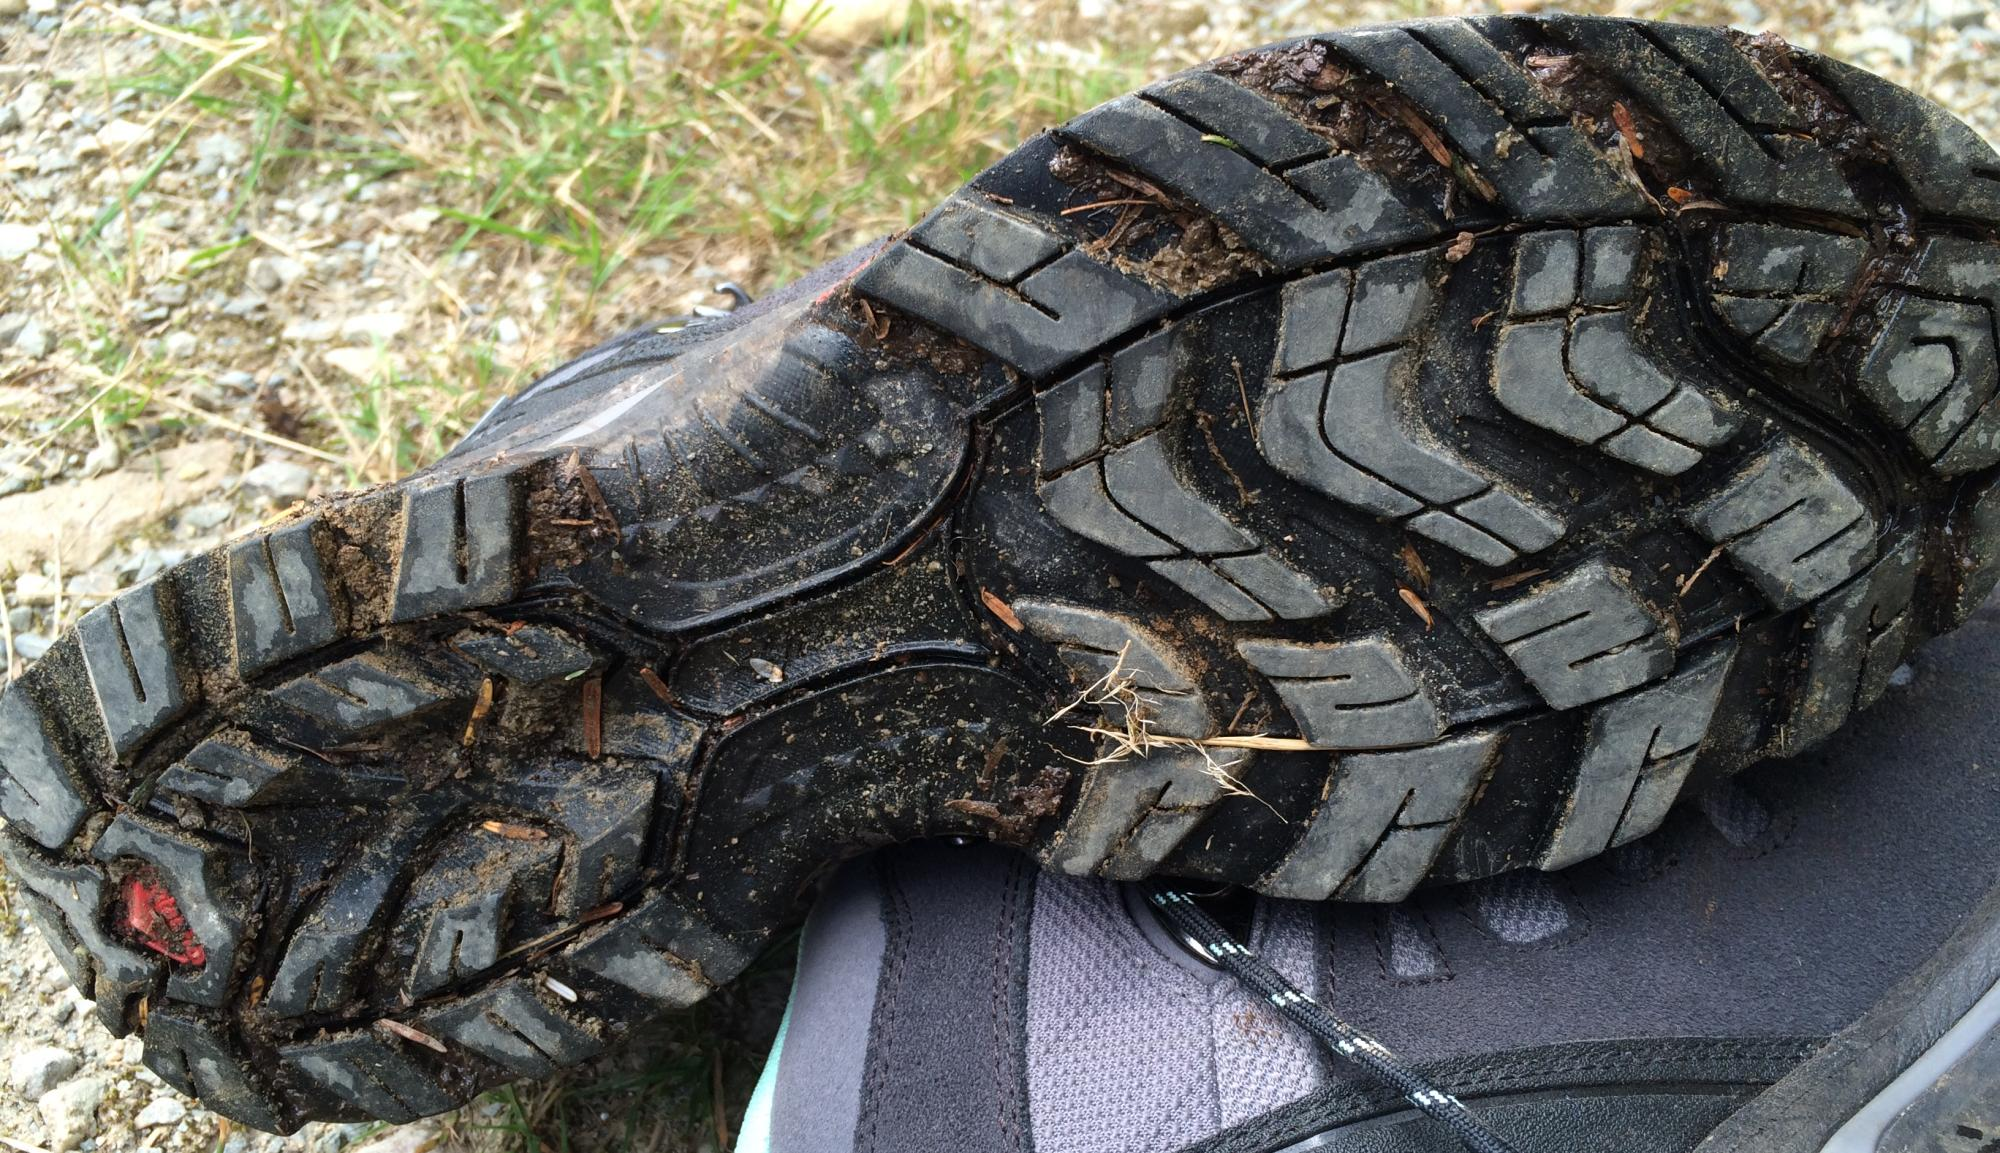 Bottom of a hiking boot, showing tread